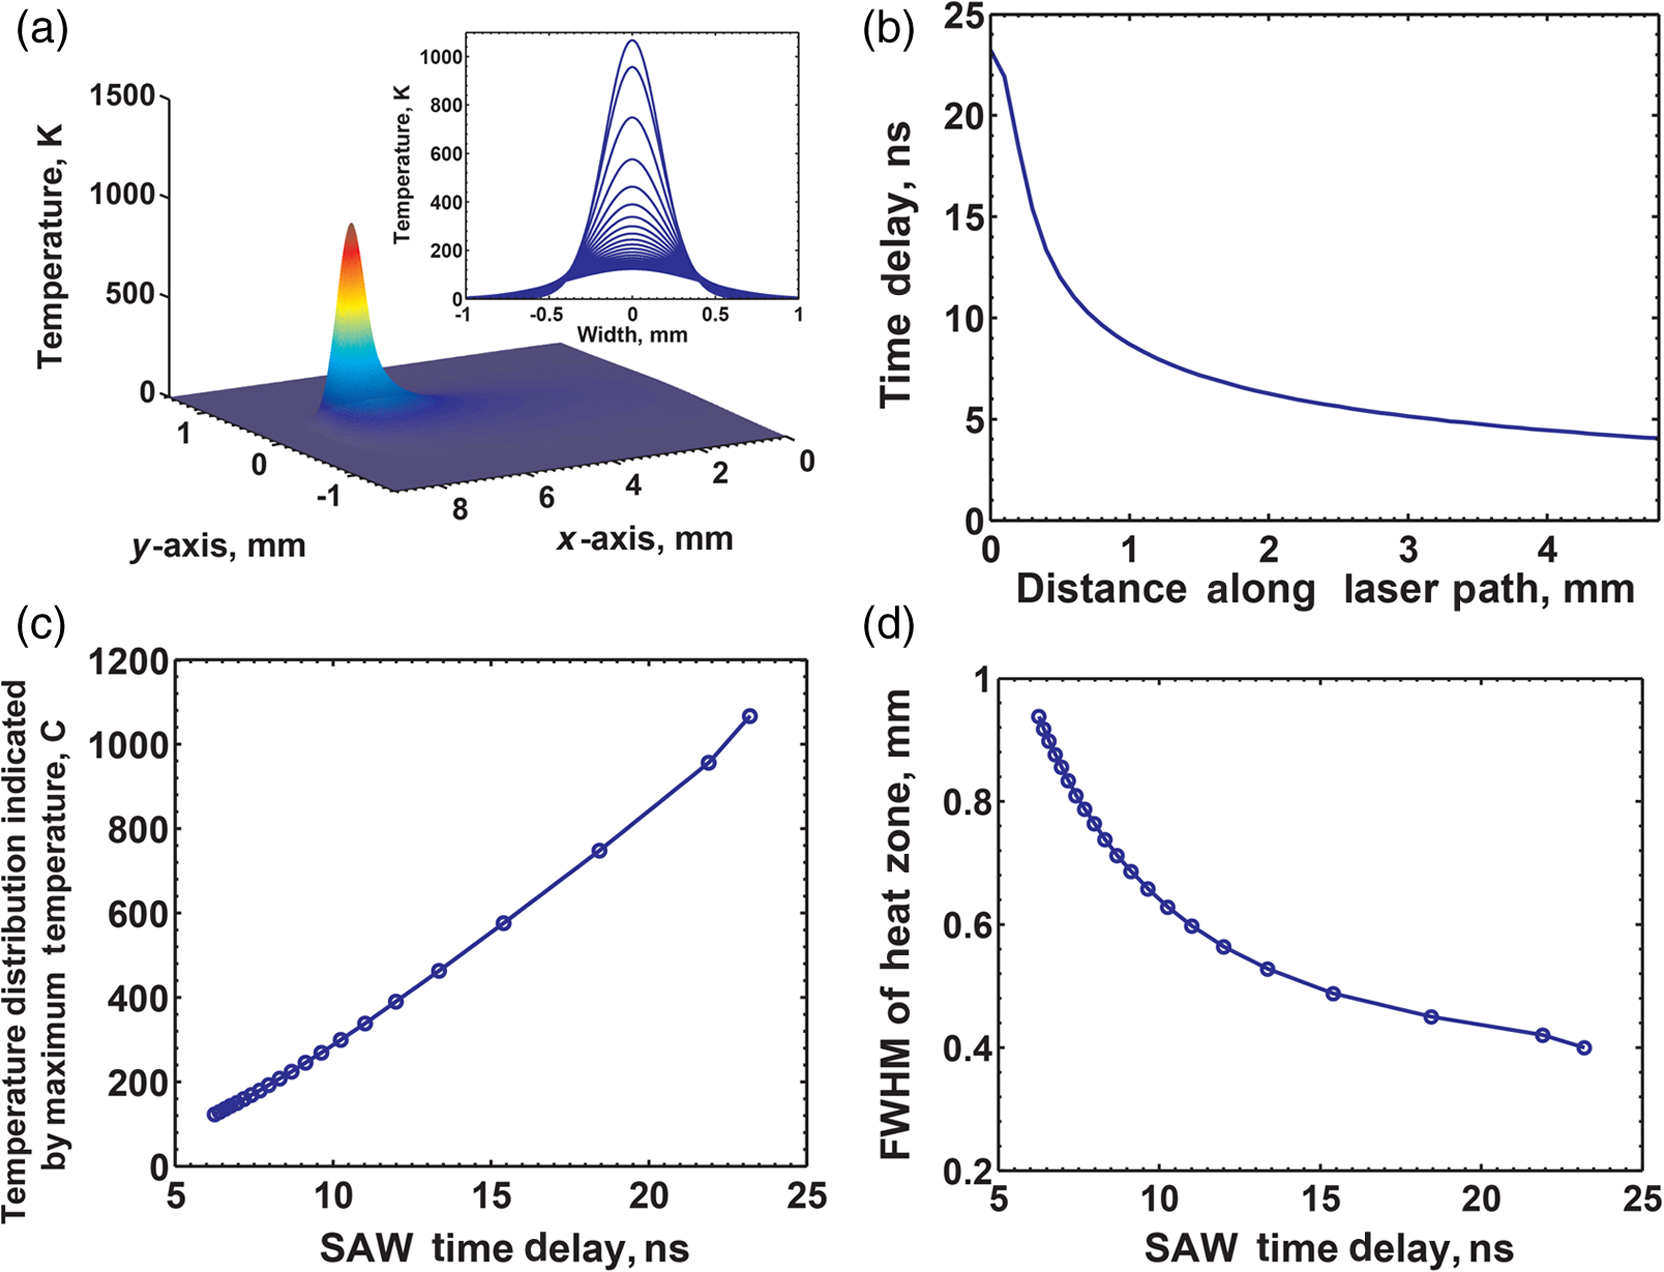 Utility Of Optical Heterodyne Displacement Sensing And Laser Application Note Visiblelaser Driver Has Digitally Controlled Power Data In C D Are Plotted As A Guide To The Process Engineer Who Measures Saw Arrival Time Can Discern Maximum Temperature Along Path